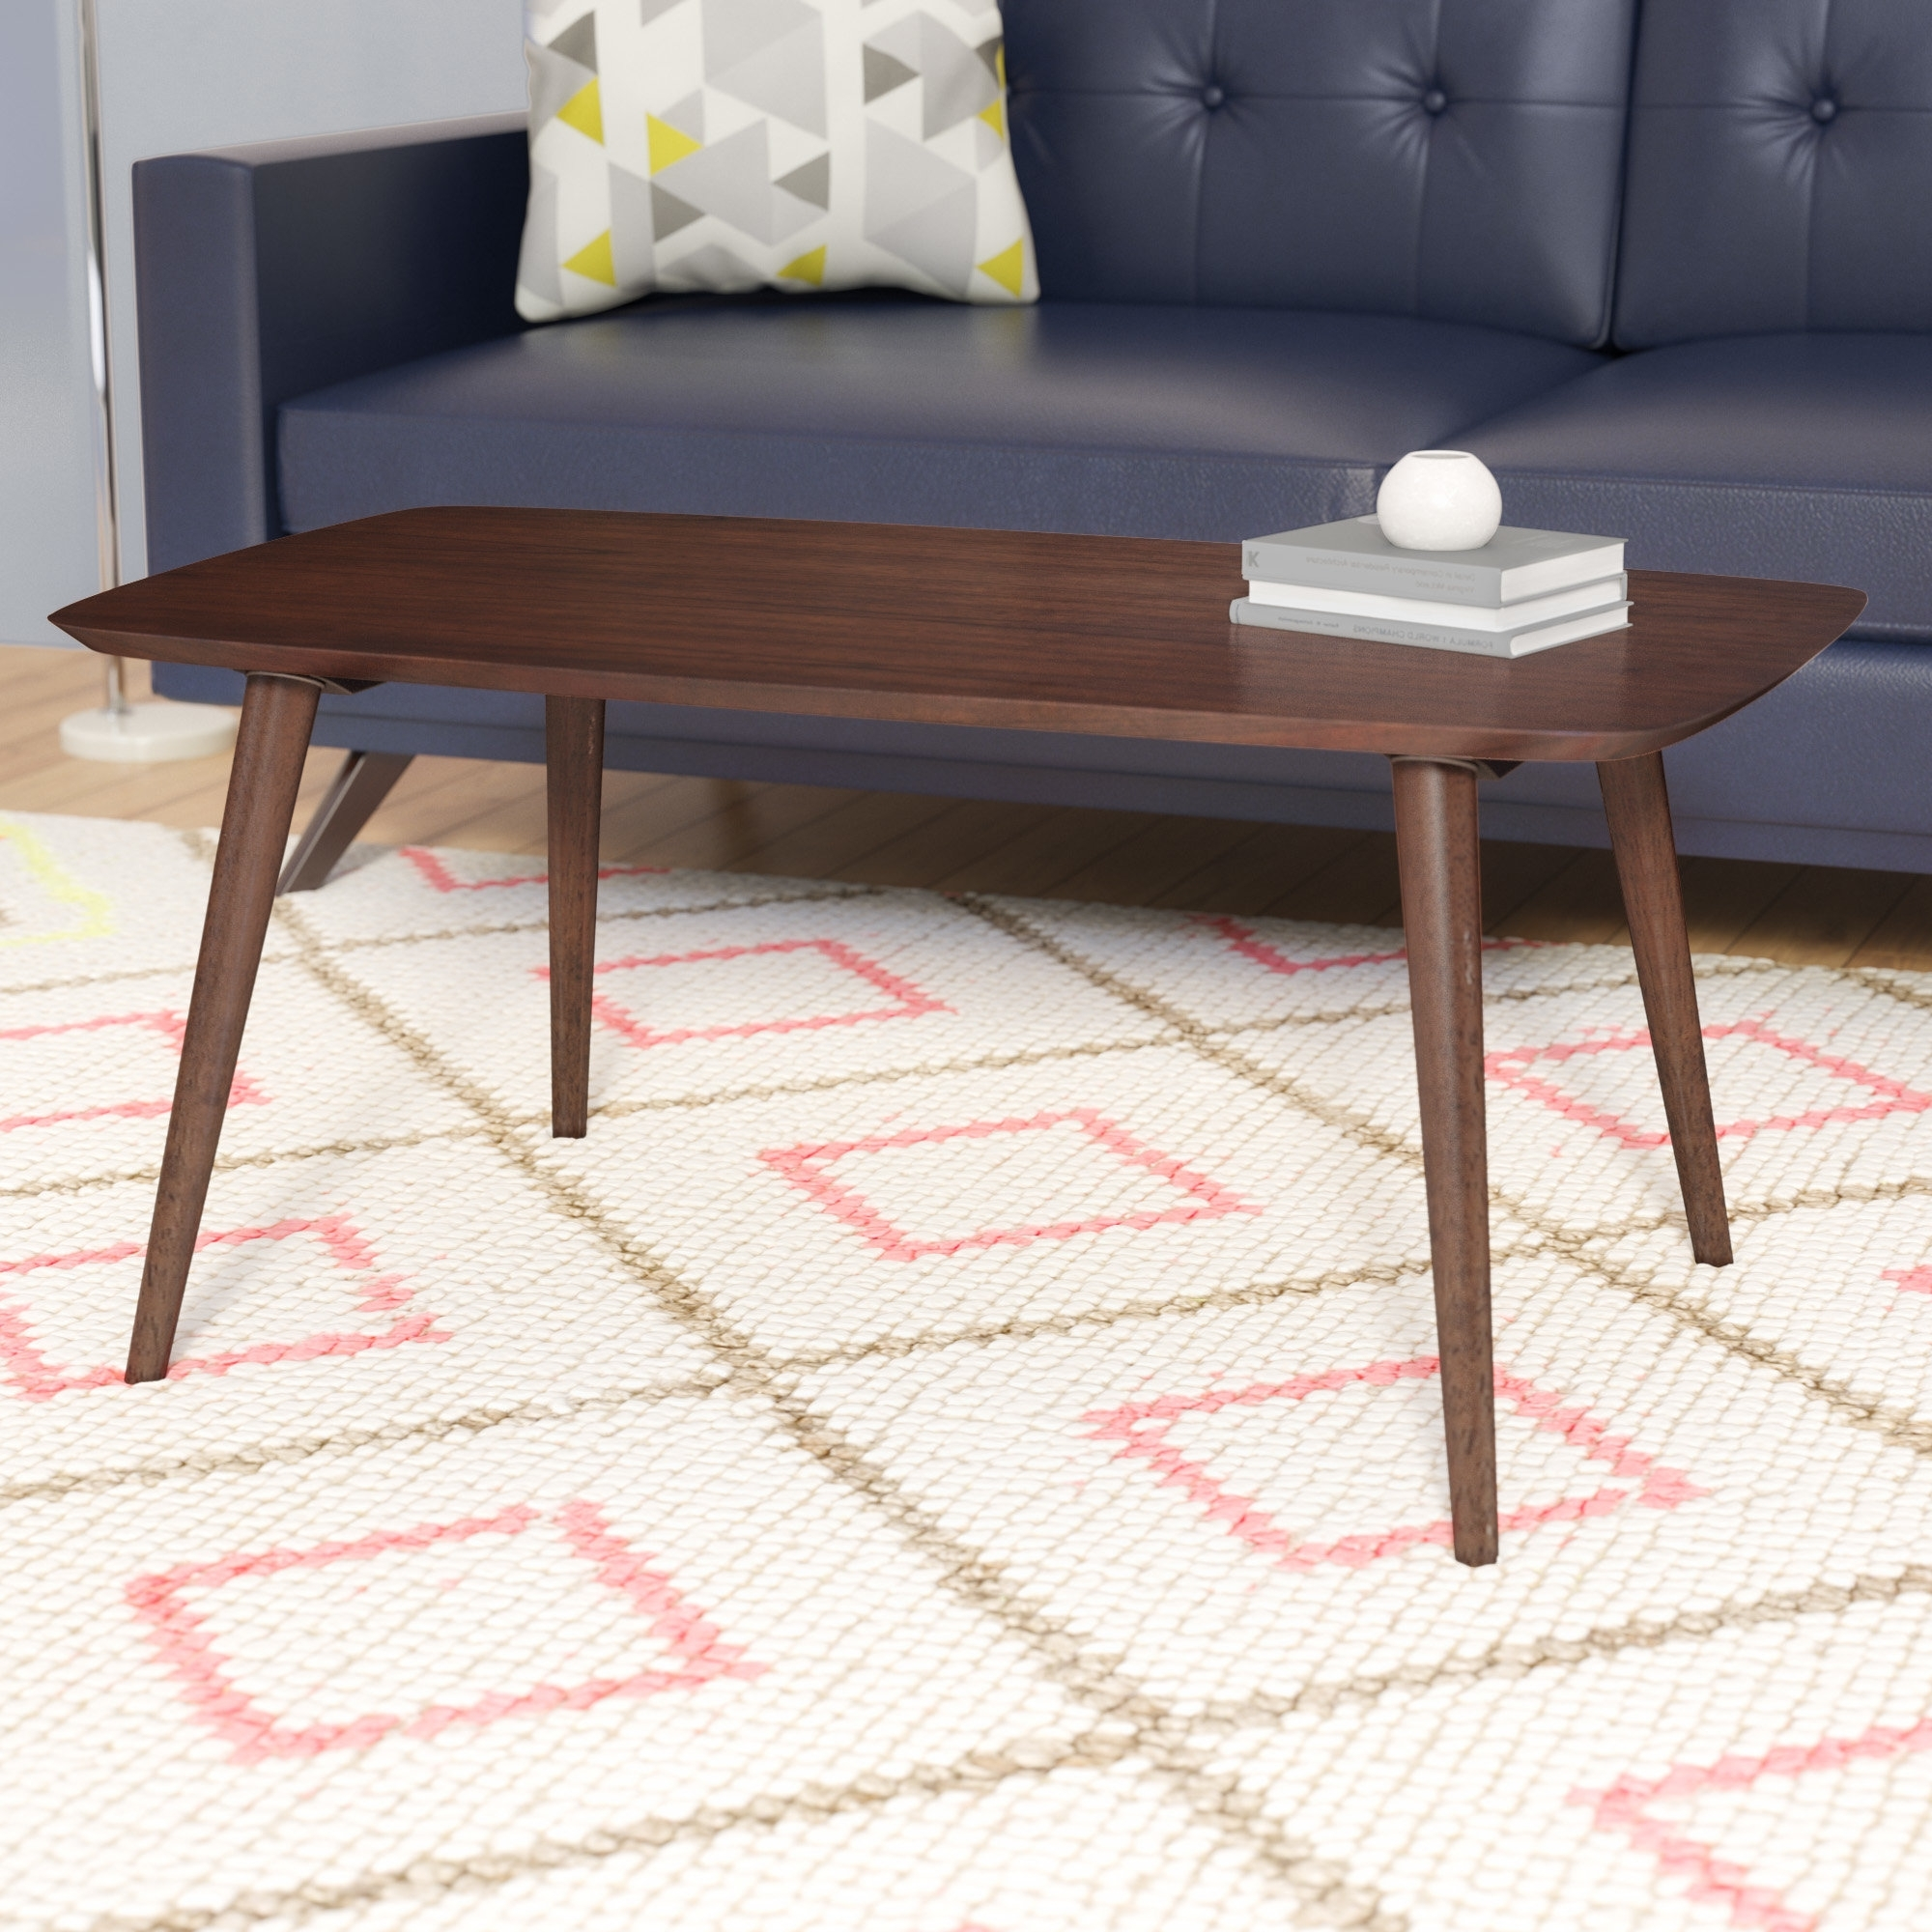 Wayfair Throughout Famous Swell Round Coffee Tables (View 17 of 20)